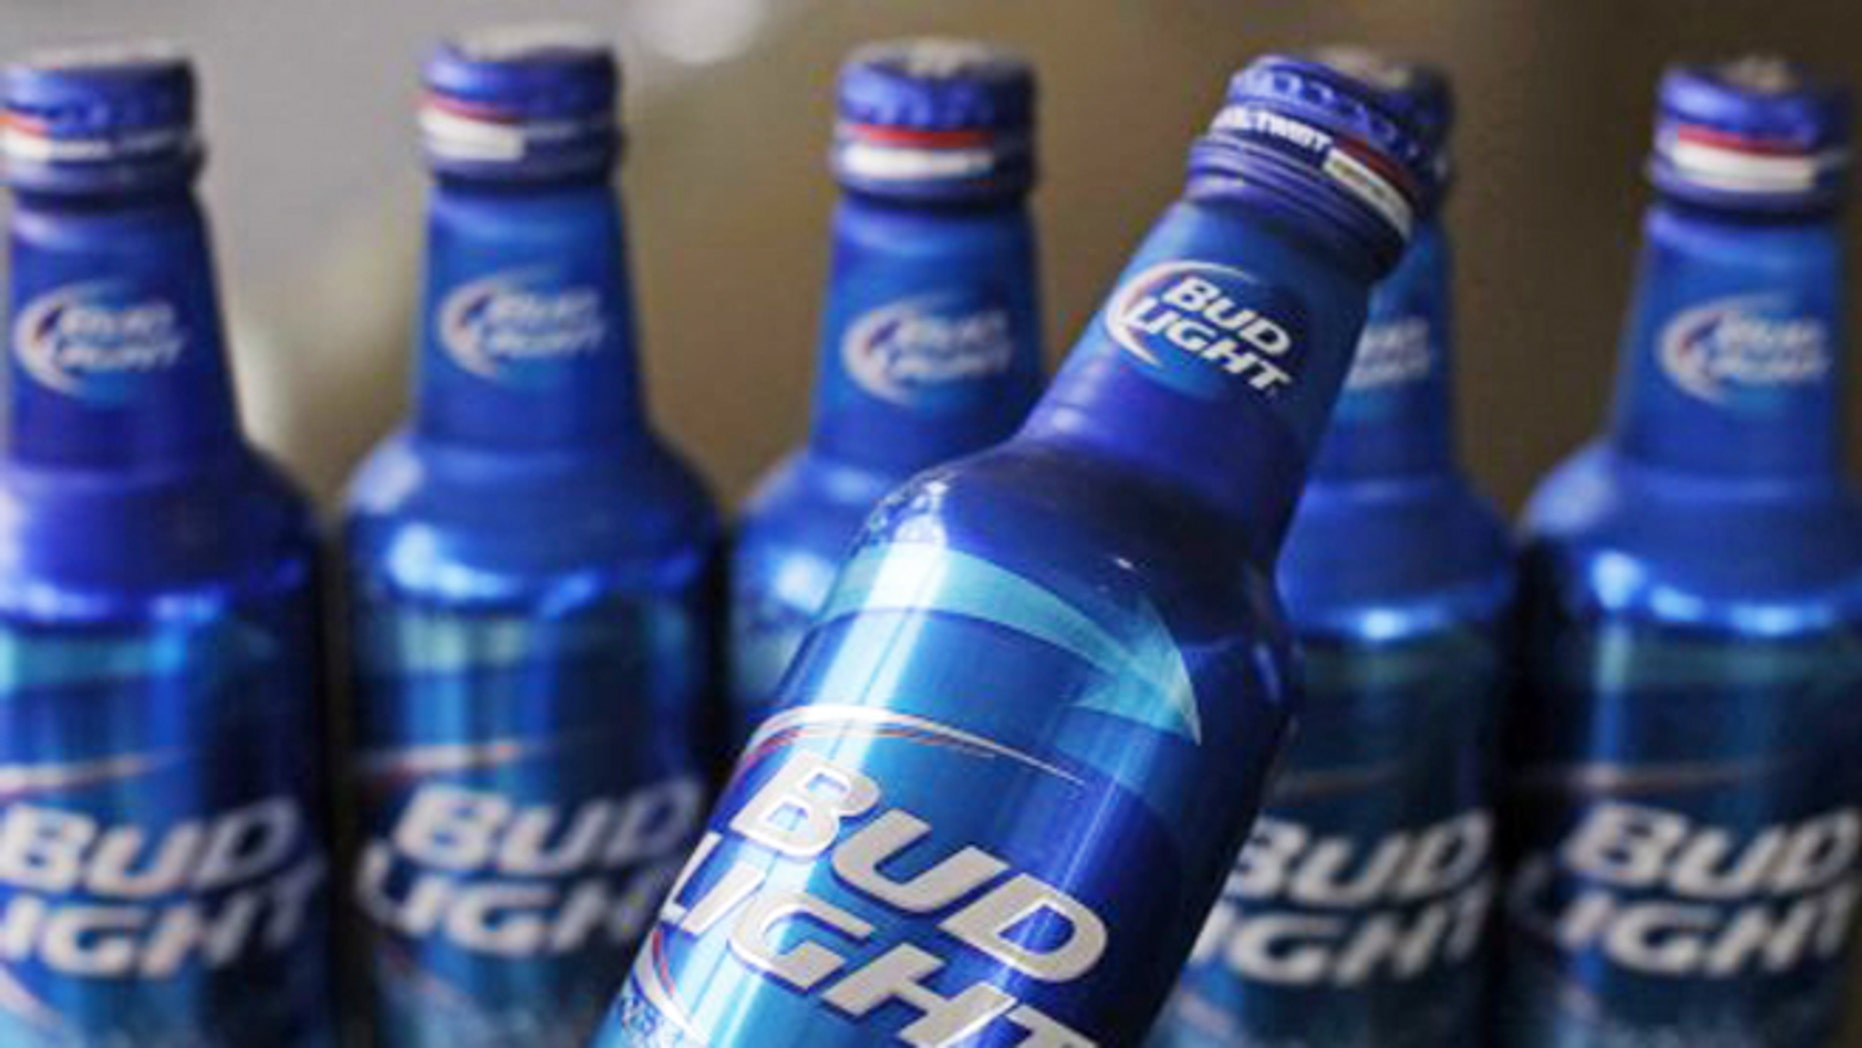 Not everyone is #UpForWhatever with Bud Light.